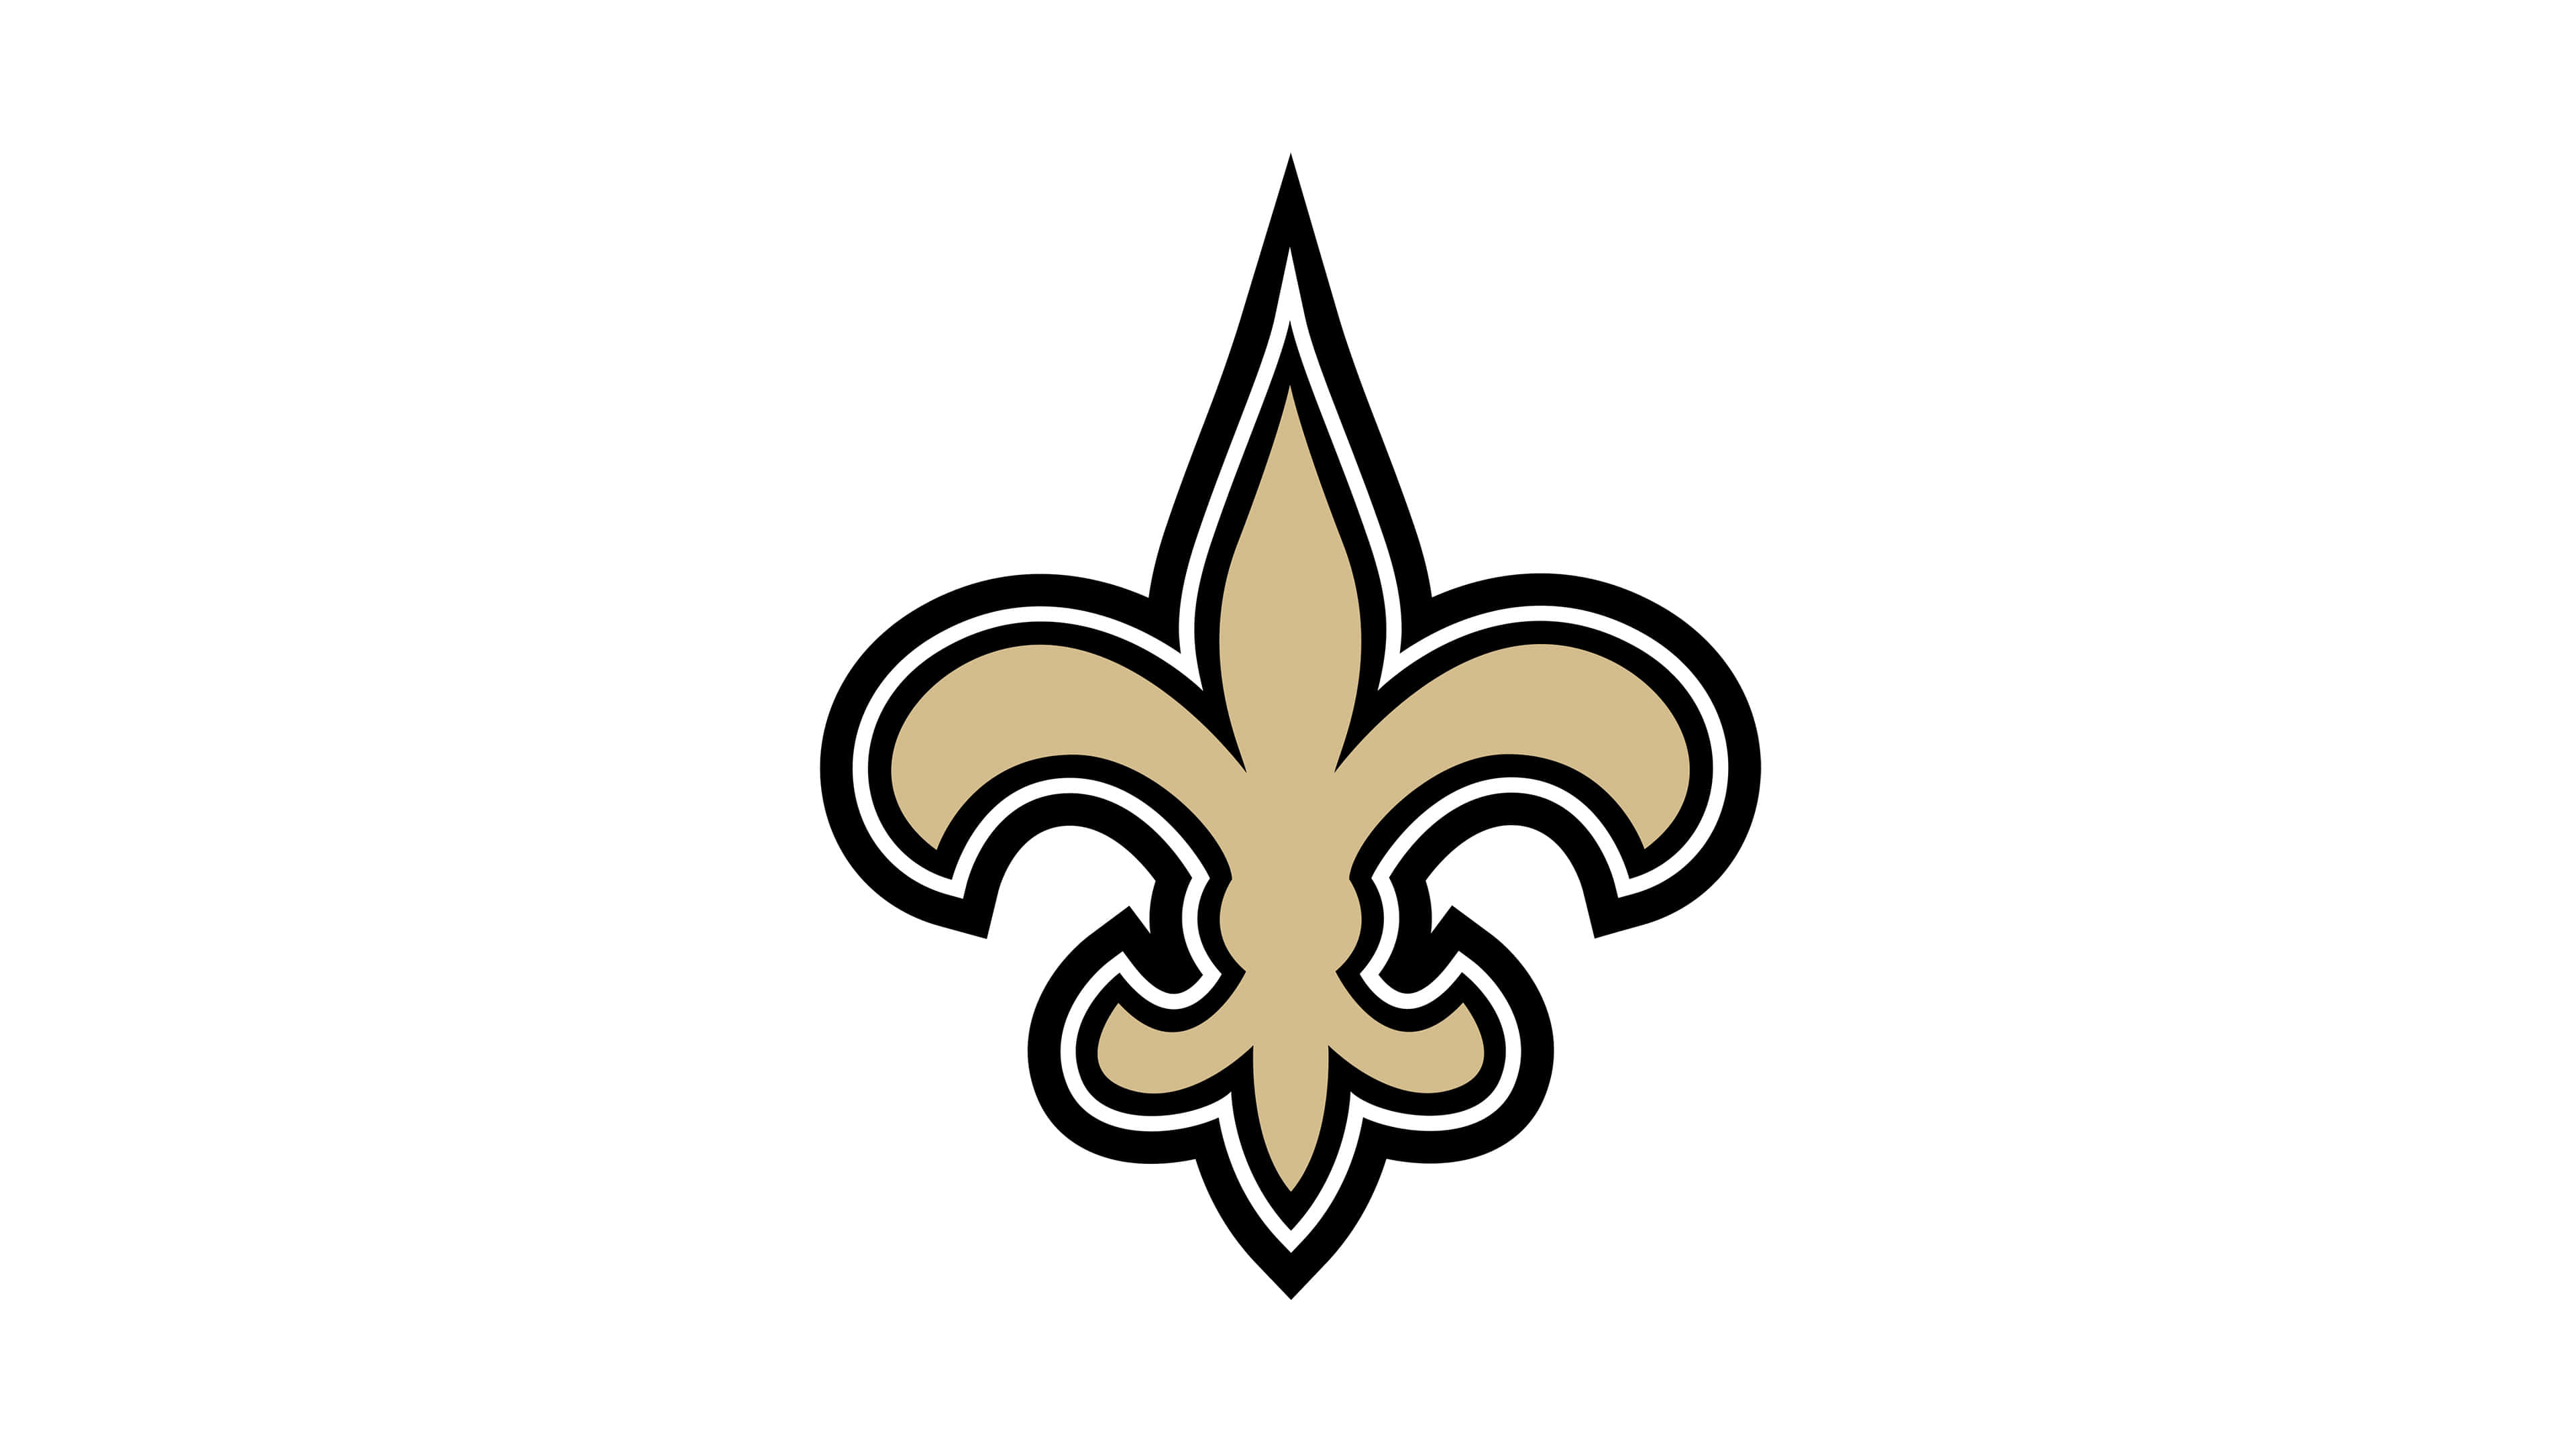 new orleans saints nfl logo uhd 4k wallpaper